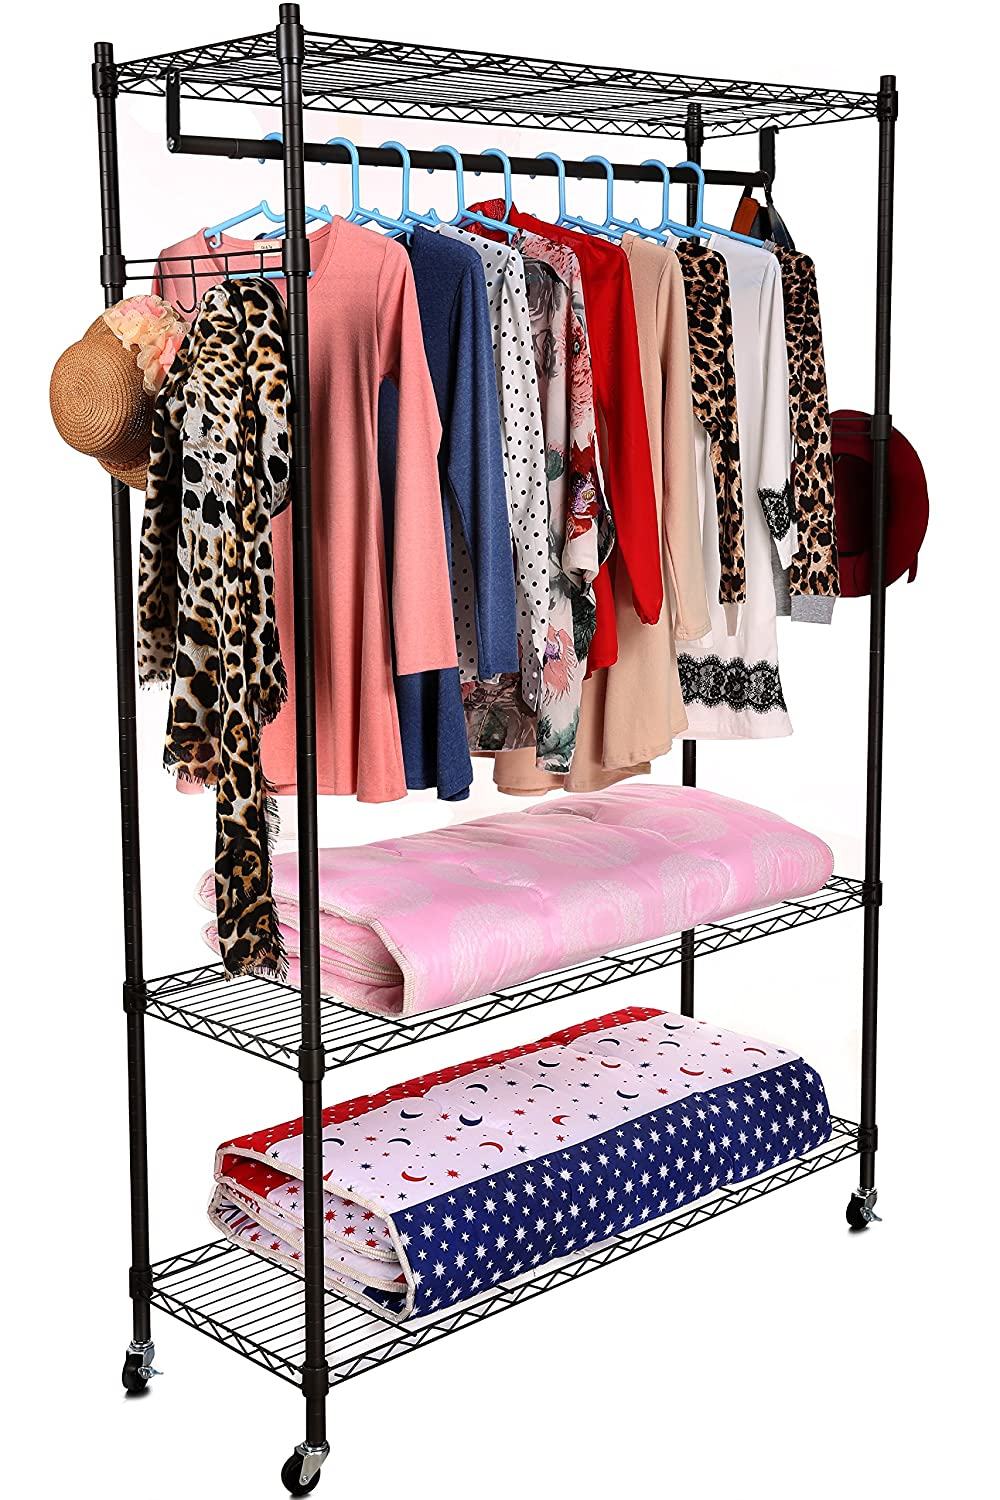 Homdox 3-Tiers Large Size Heavy Duty Wire Shelving Garment Rolling Rack Clothing Rack with Double Clothes Rods and Lockable Wheels+1 Pair Side Hooks,Black US01+HX002971_1B